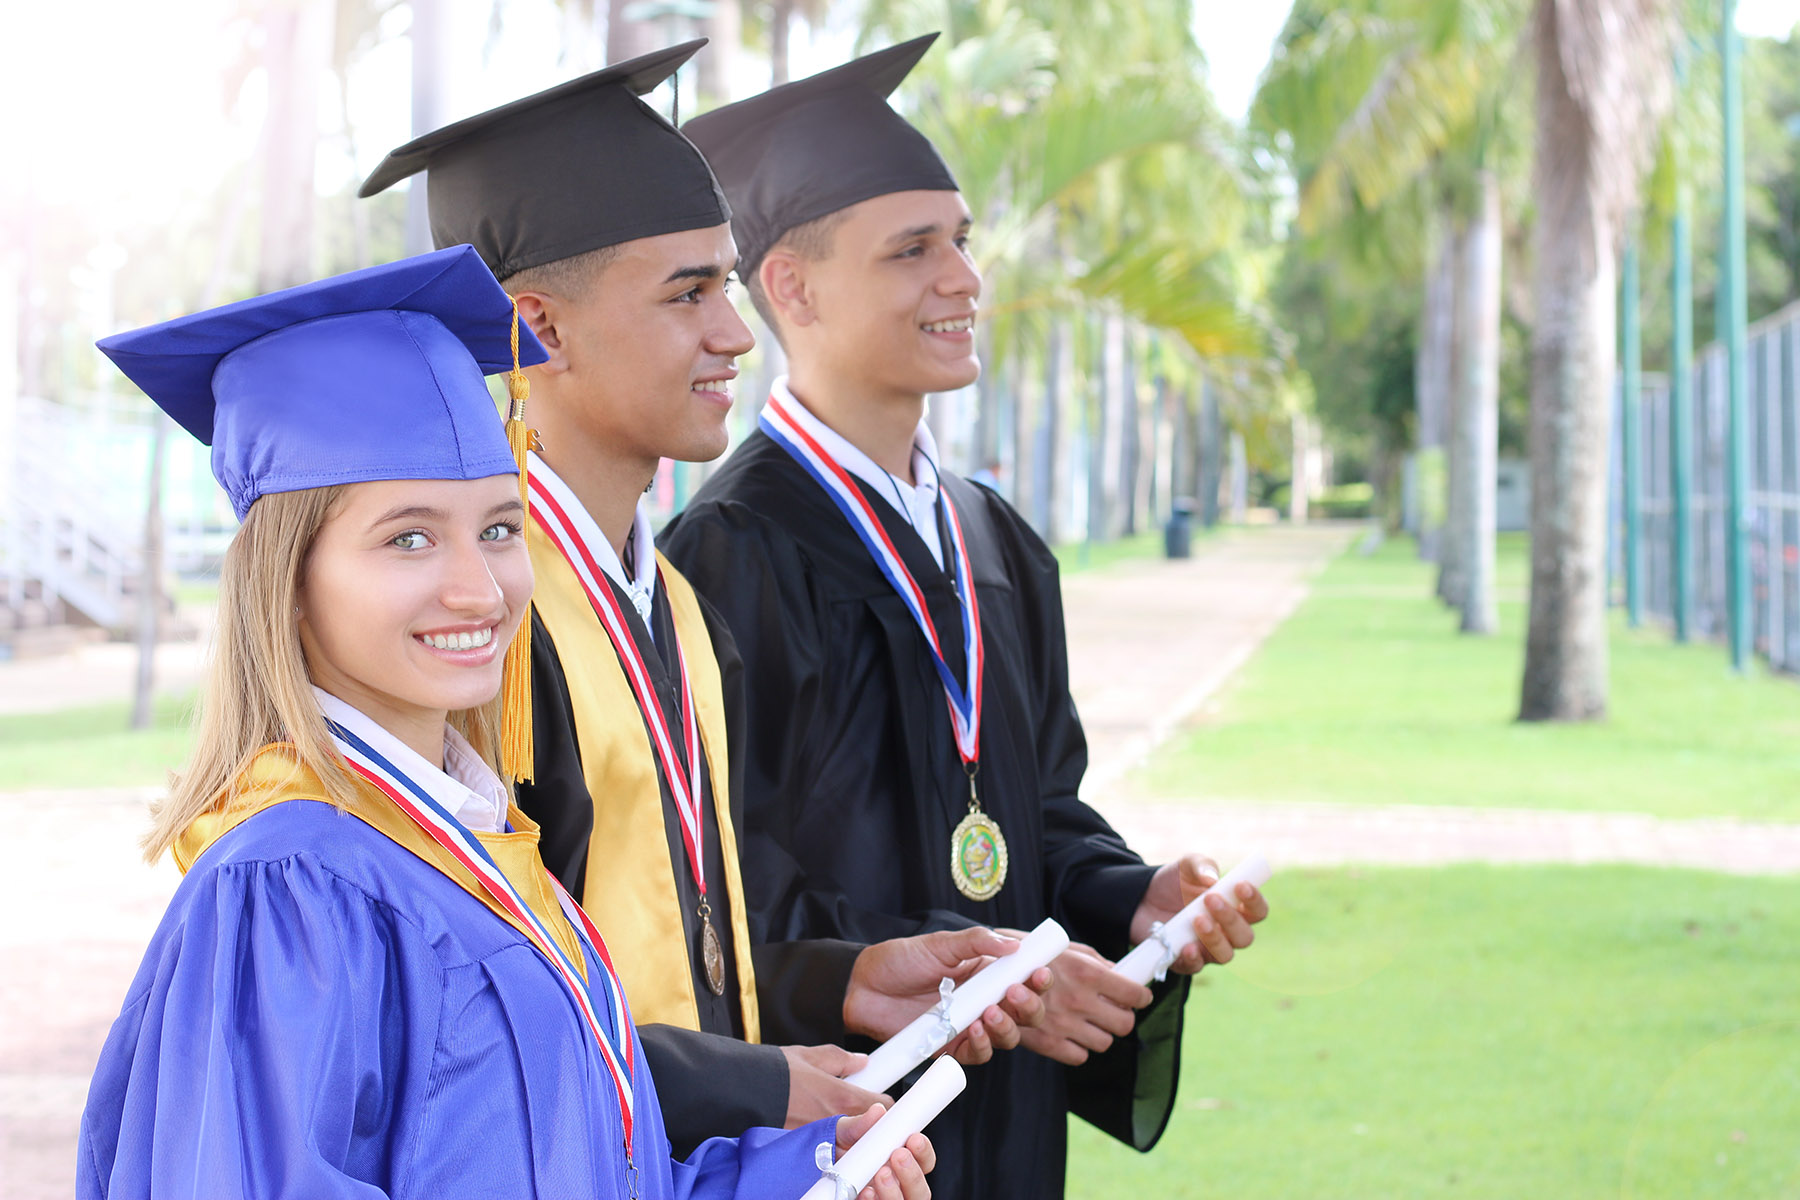 Qué celebran los Graduandos: Prom, Class Day, Ring Ceremony…